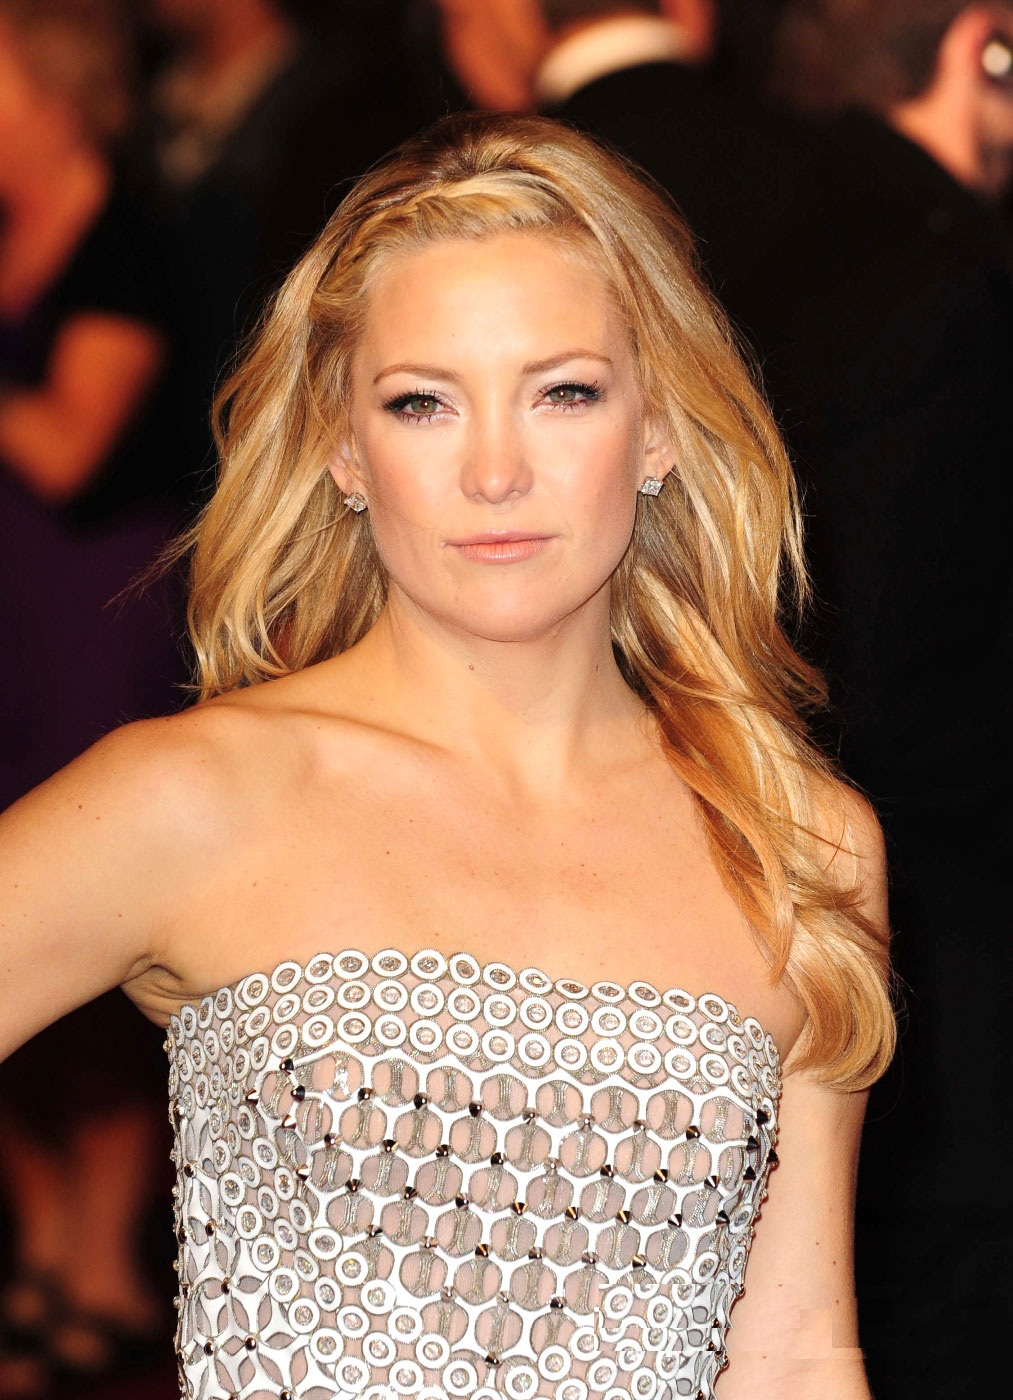 Kate Hudson Hottest Bikini Pictures Reveal Her Sexy Curvy Body